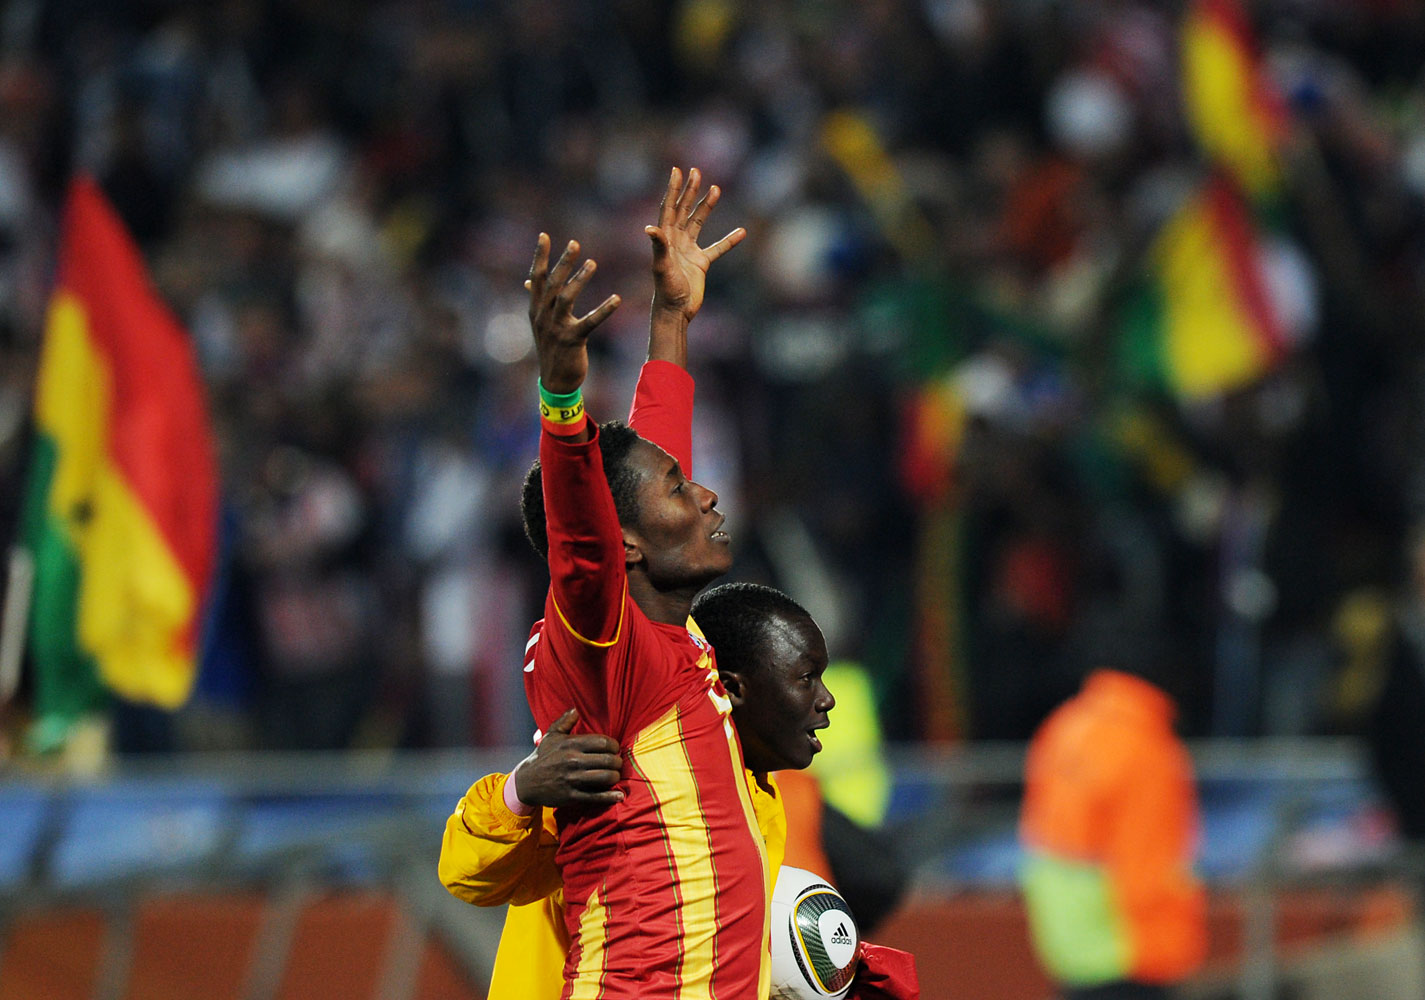 Ghana's striker Asamoah Gyan acknowledges the crowd after defeating the USA 2-1 in extra time of their 2010 World Cup round of 16 football match at Royal Bafokeng stadium in Rustenburg, South Africa, on June 26, 2010.